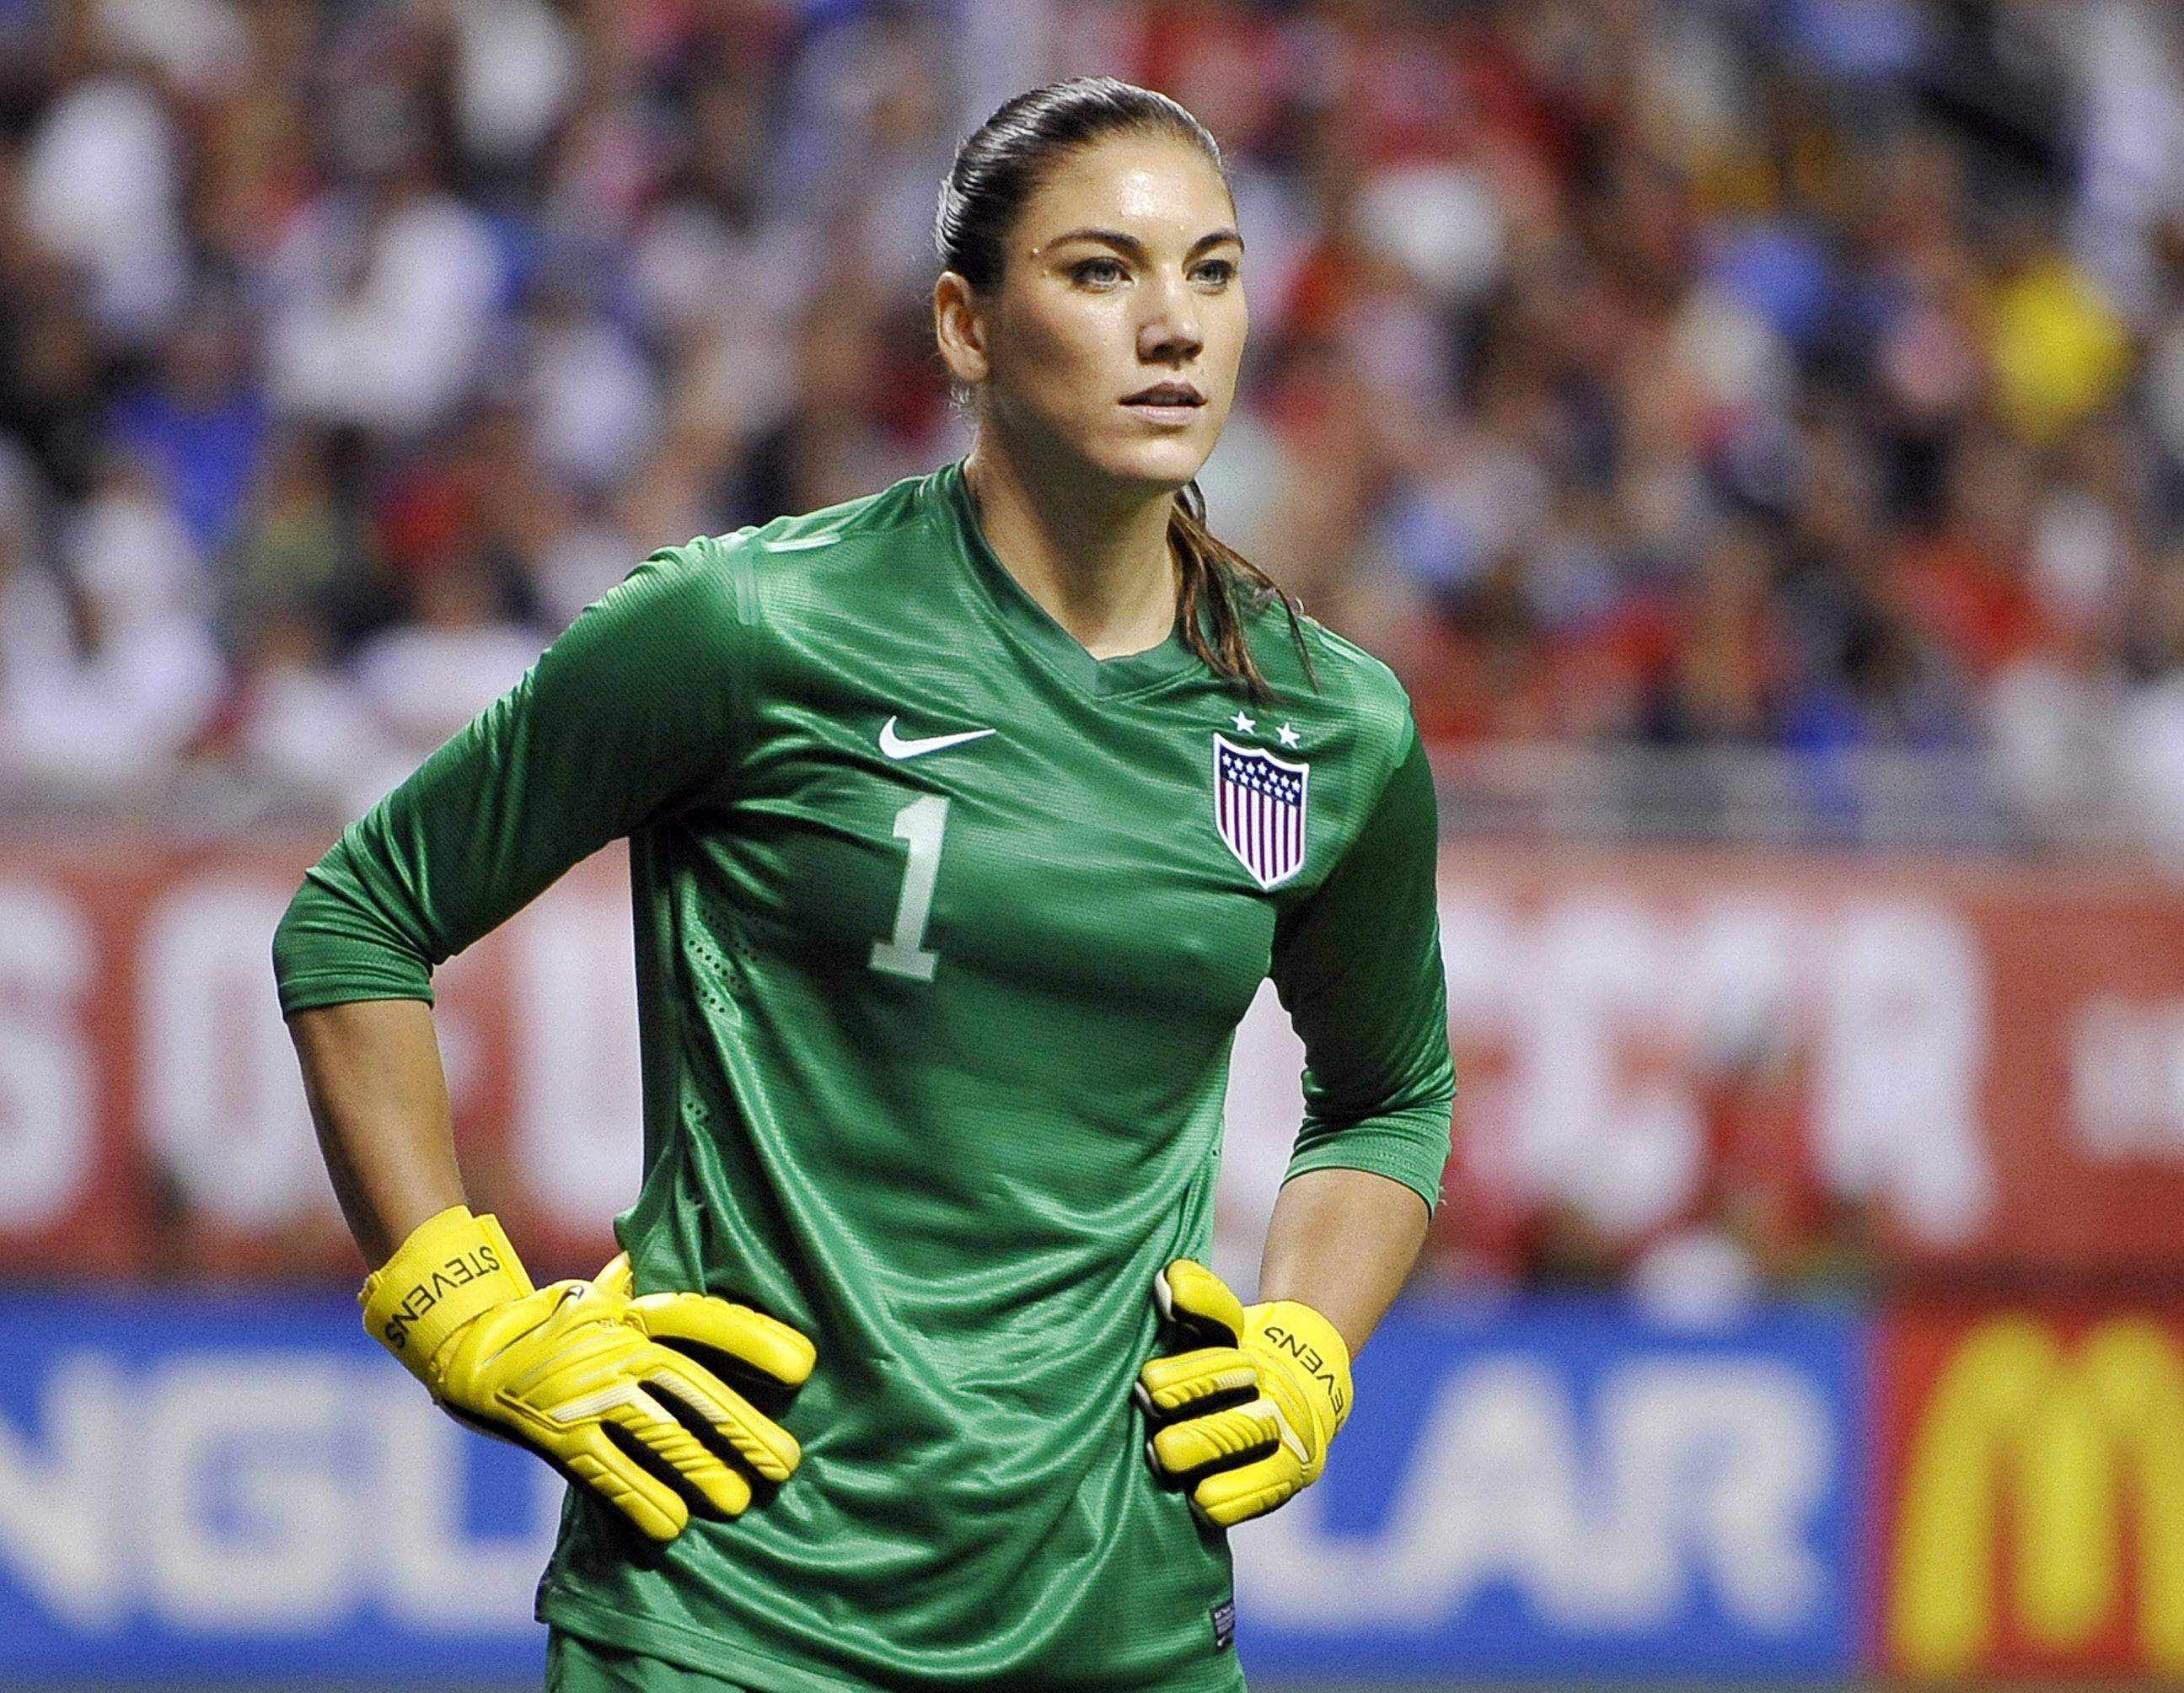 United States goalkeeper Hope Solo was arrested early Saturday at a suburban Seattle home and charged with assaulting her sister and nephew.